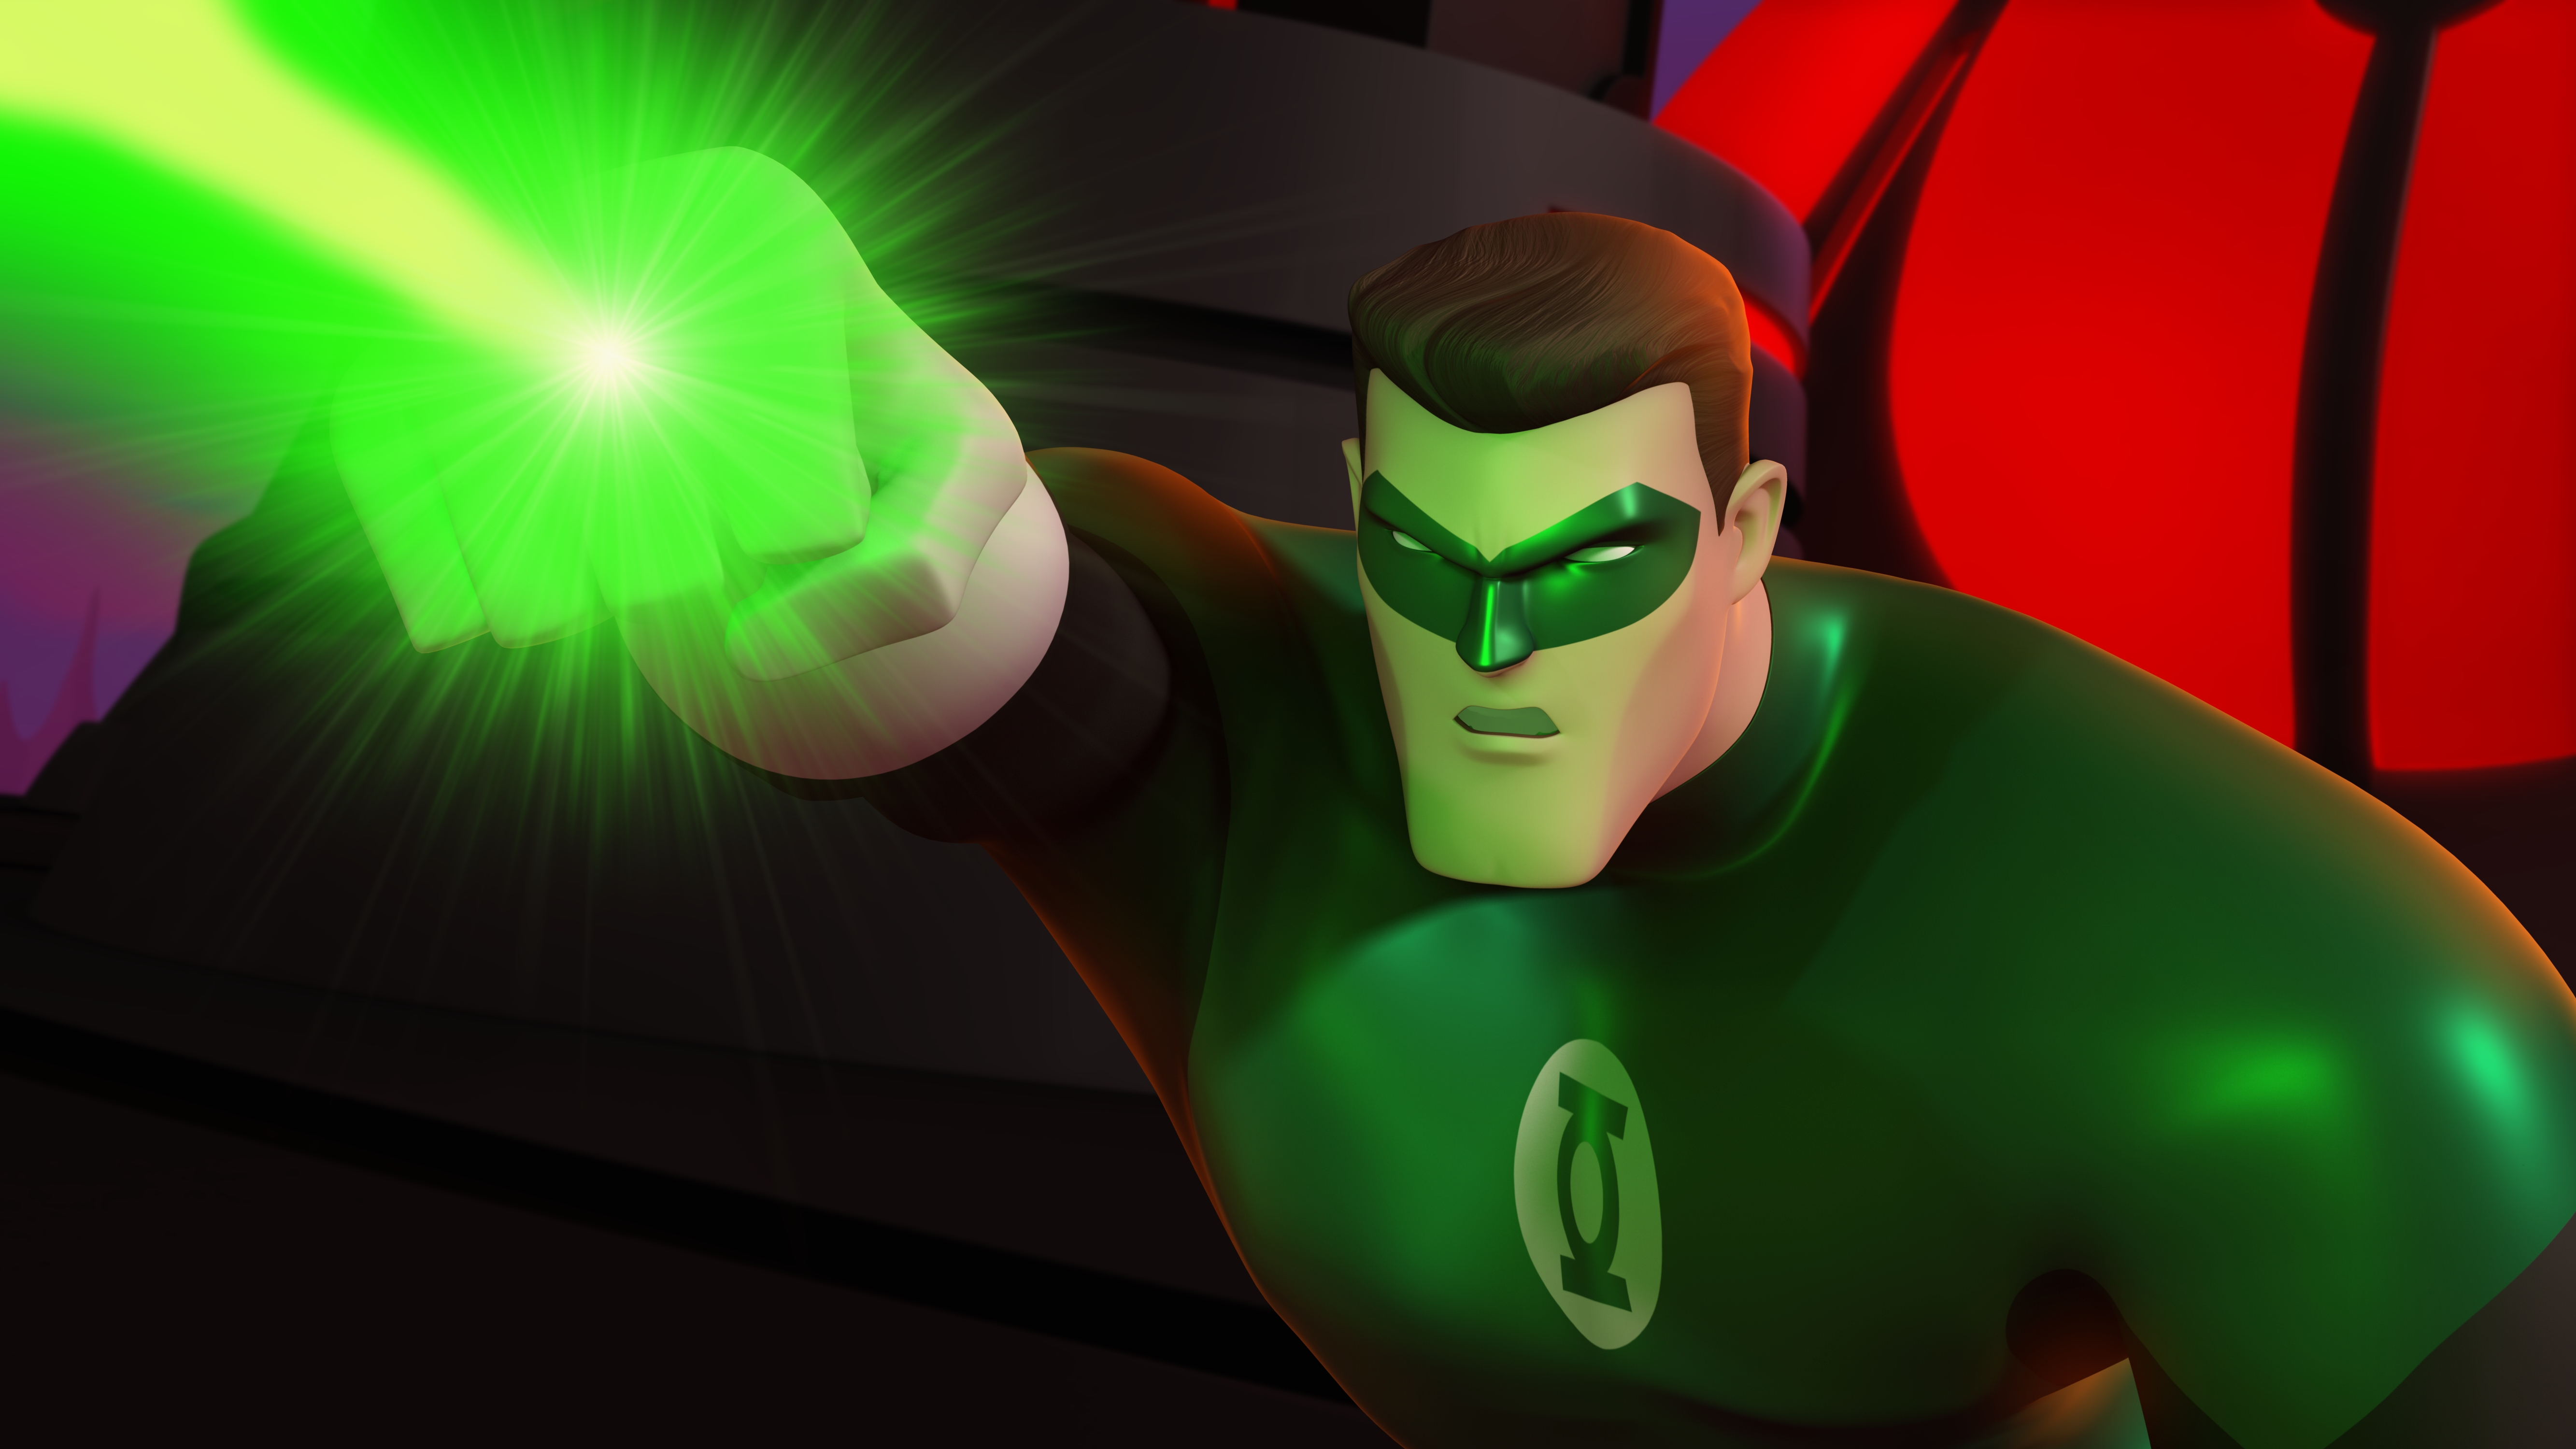 With the release of the Ryan Reynolds-lead flick, you just knew a 'Green Lantern' series was in the pipeline. The only surprise was that they went the cg route as […]